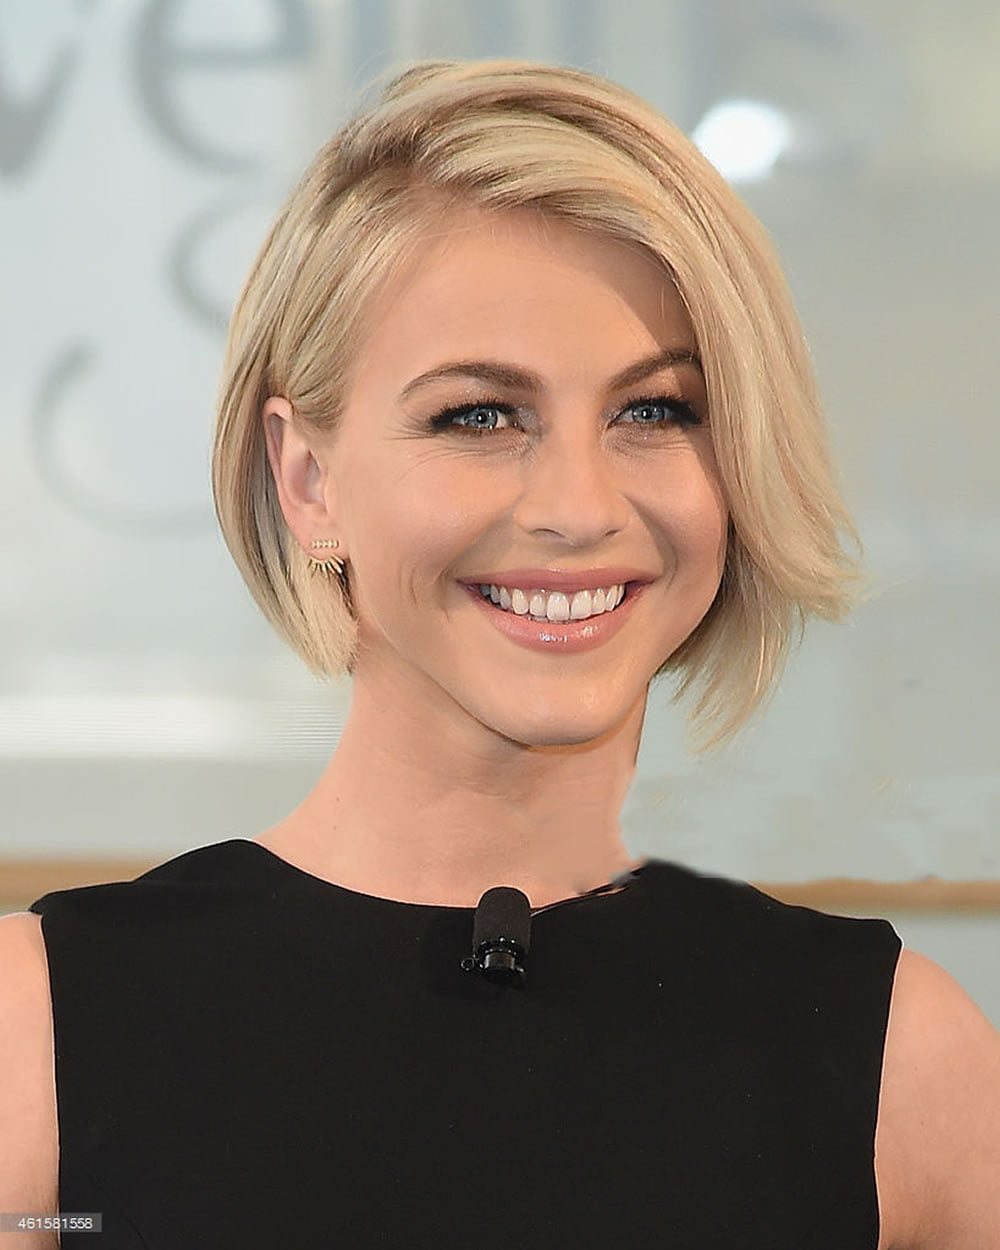 how to style my hair like julianne hough how to cut a line bob like julianne hough bob 5435